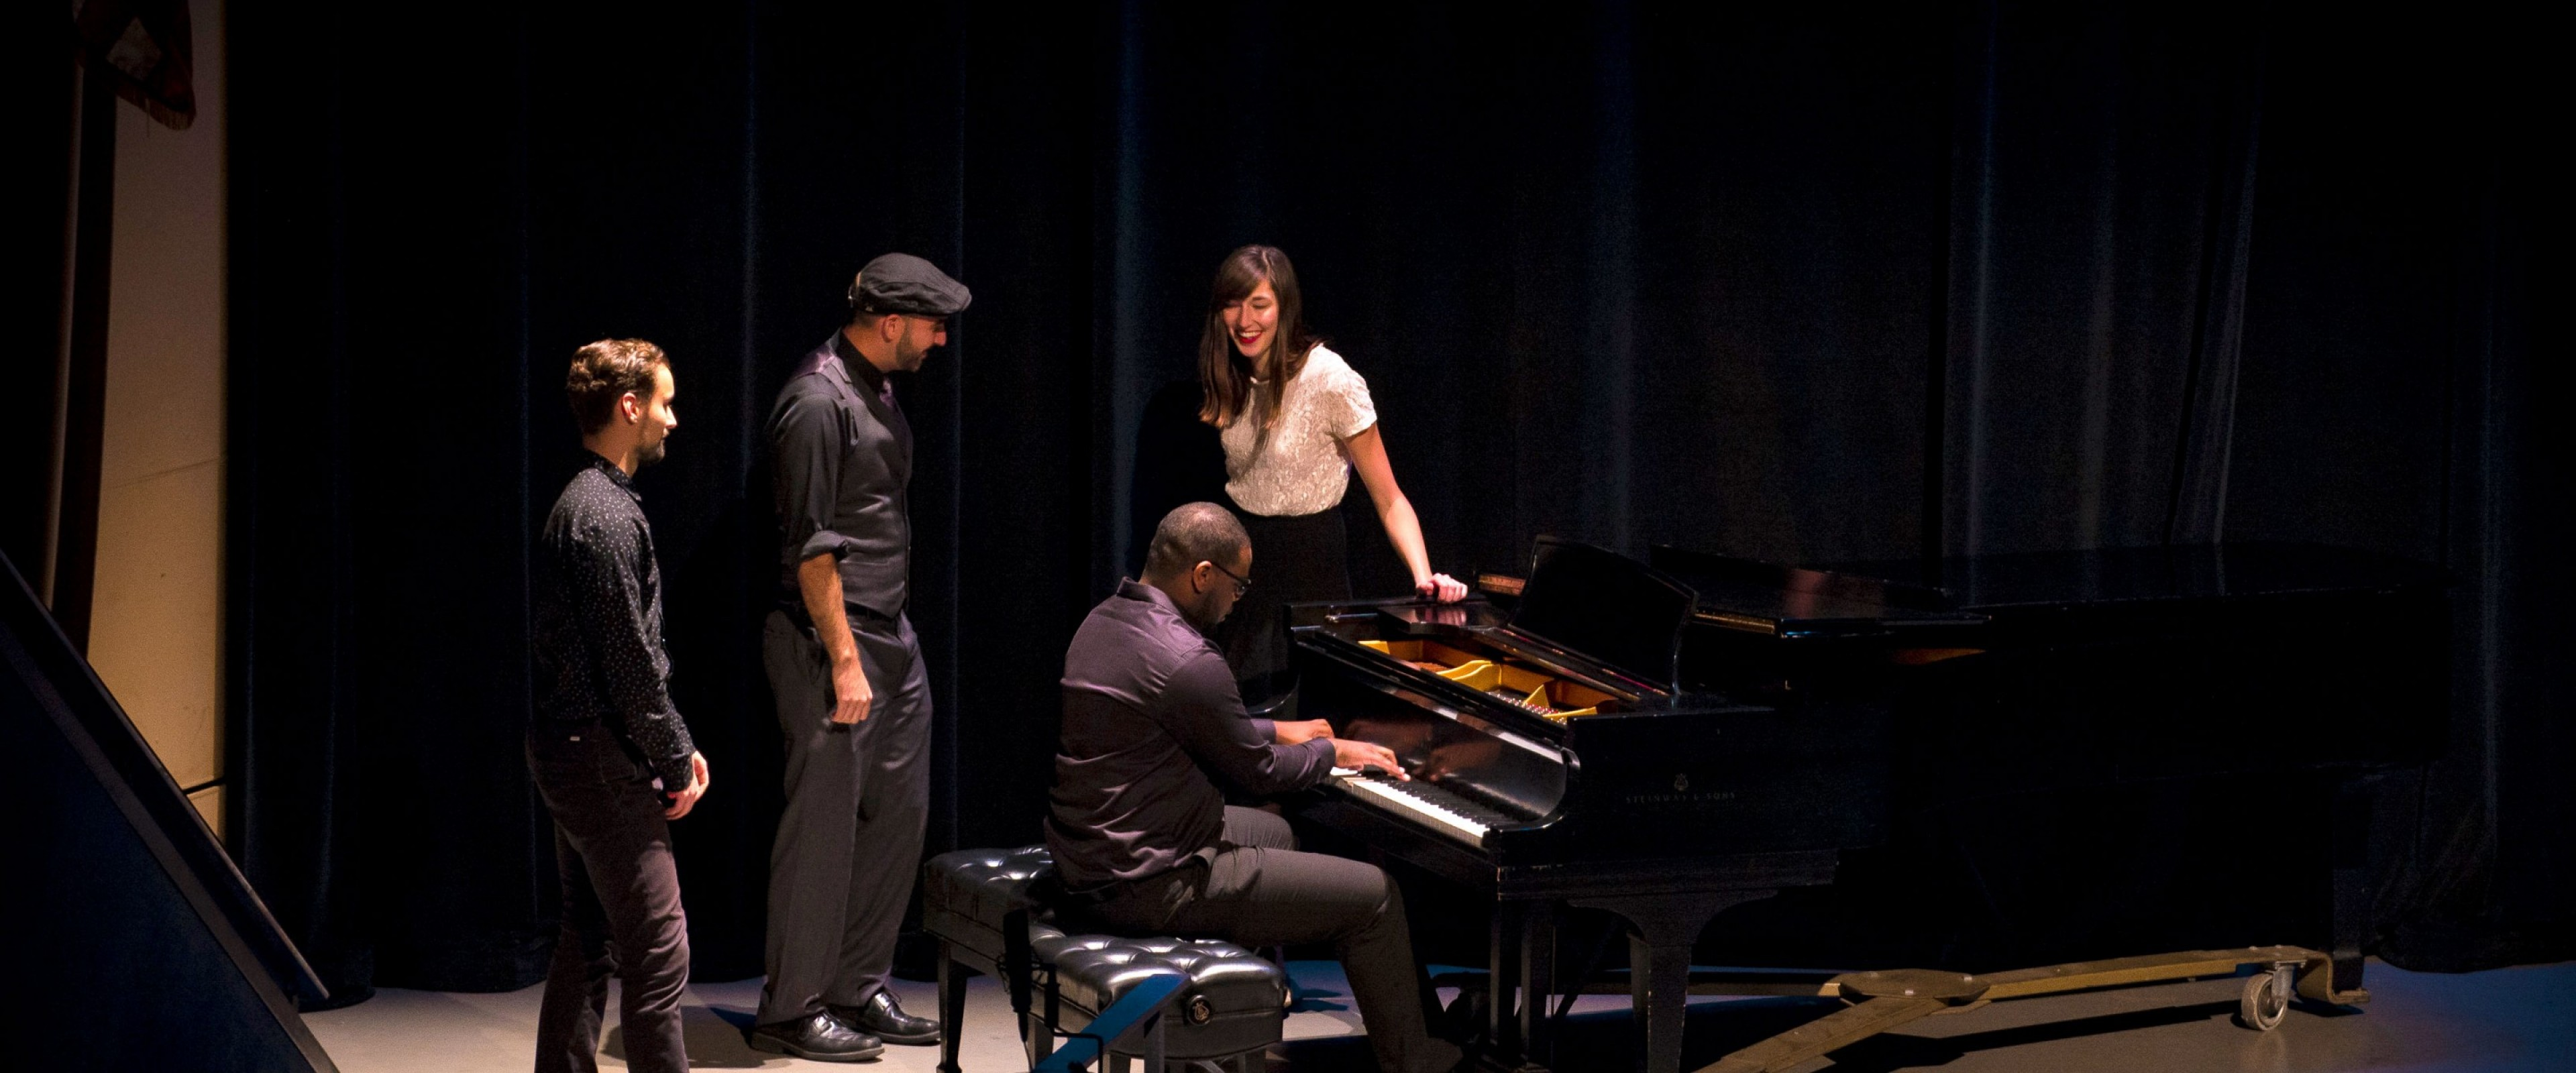 Jazz students gather around a piano, playing music and singing